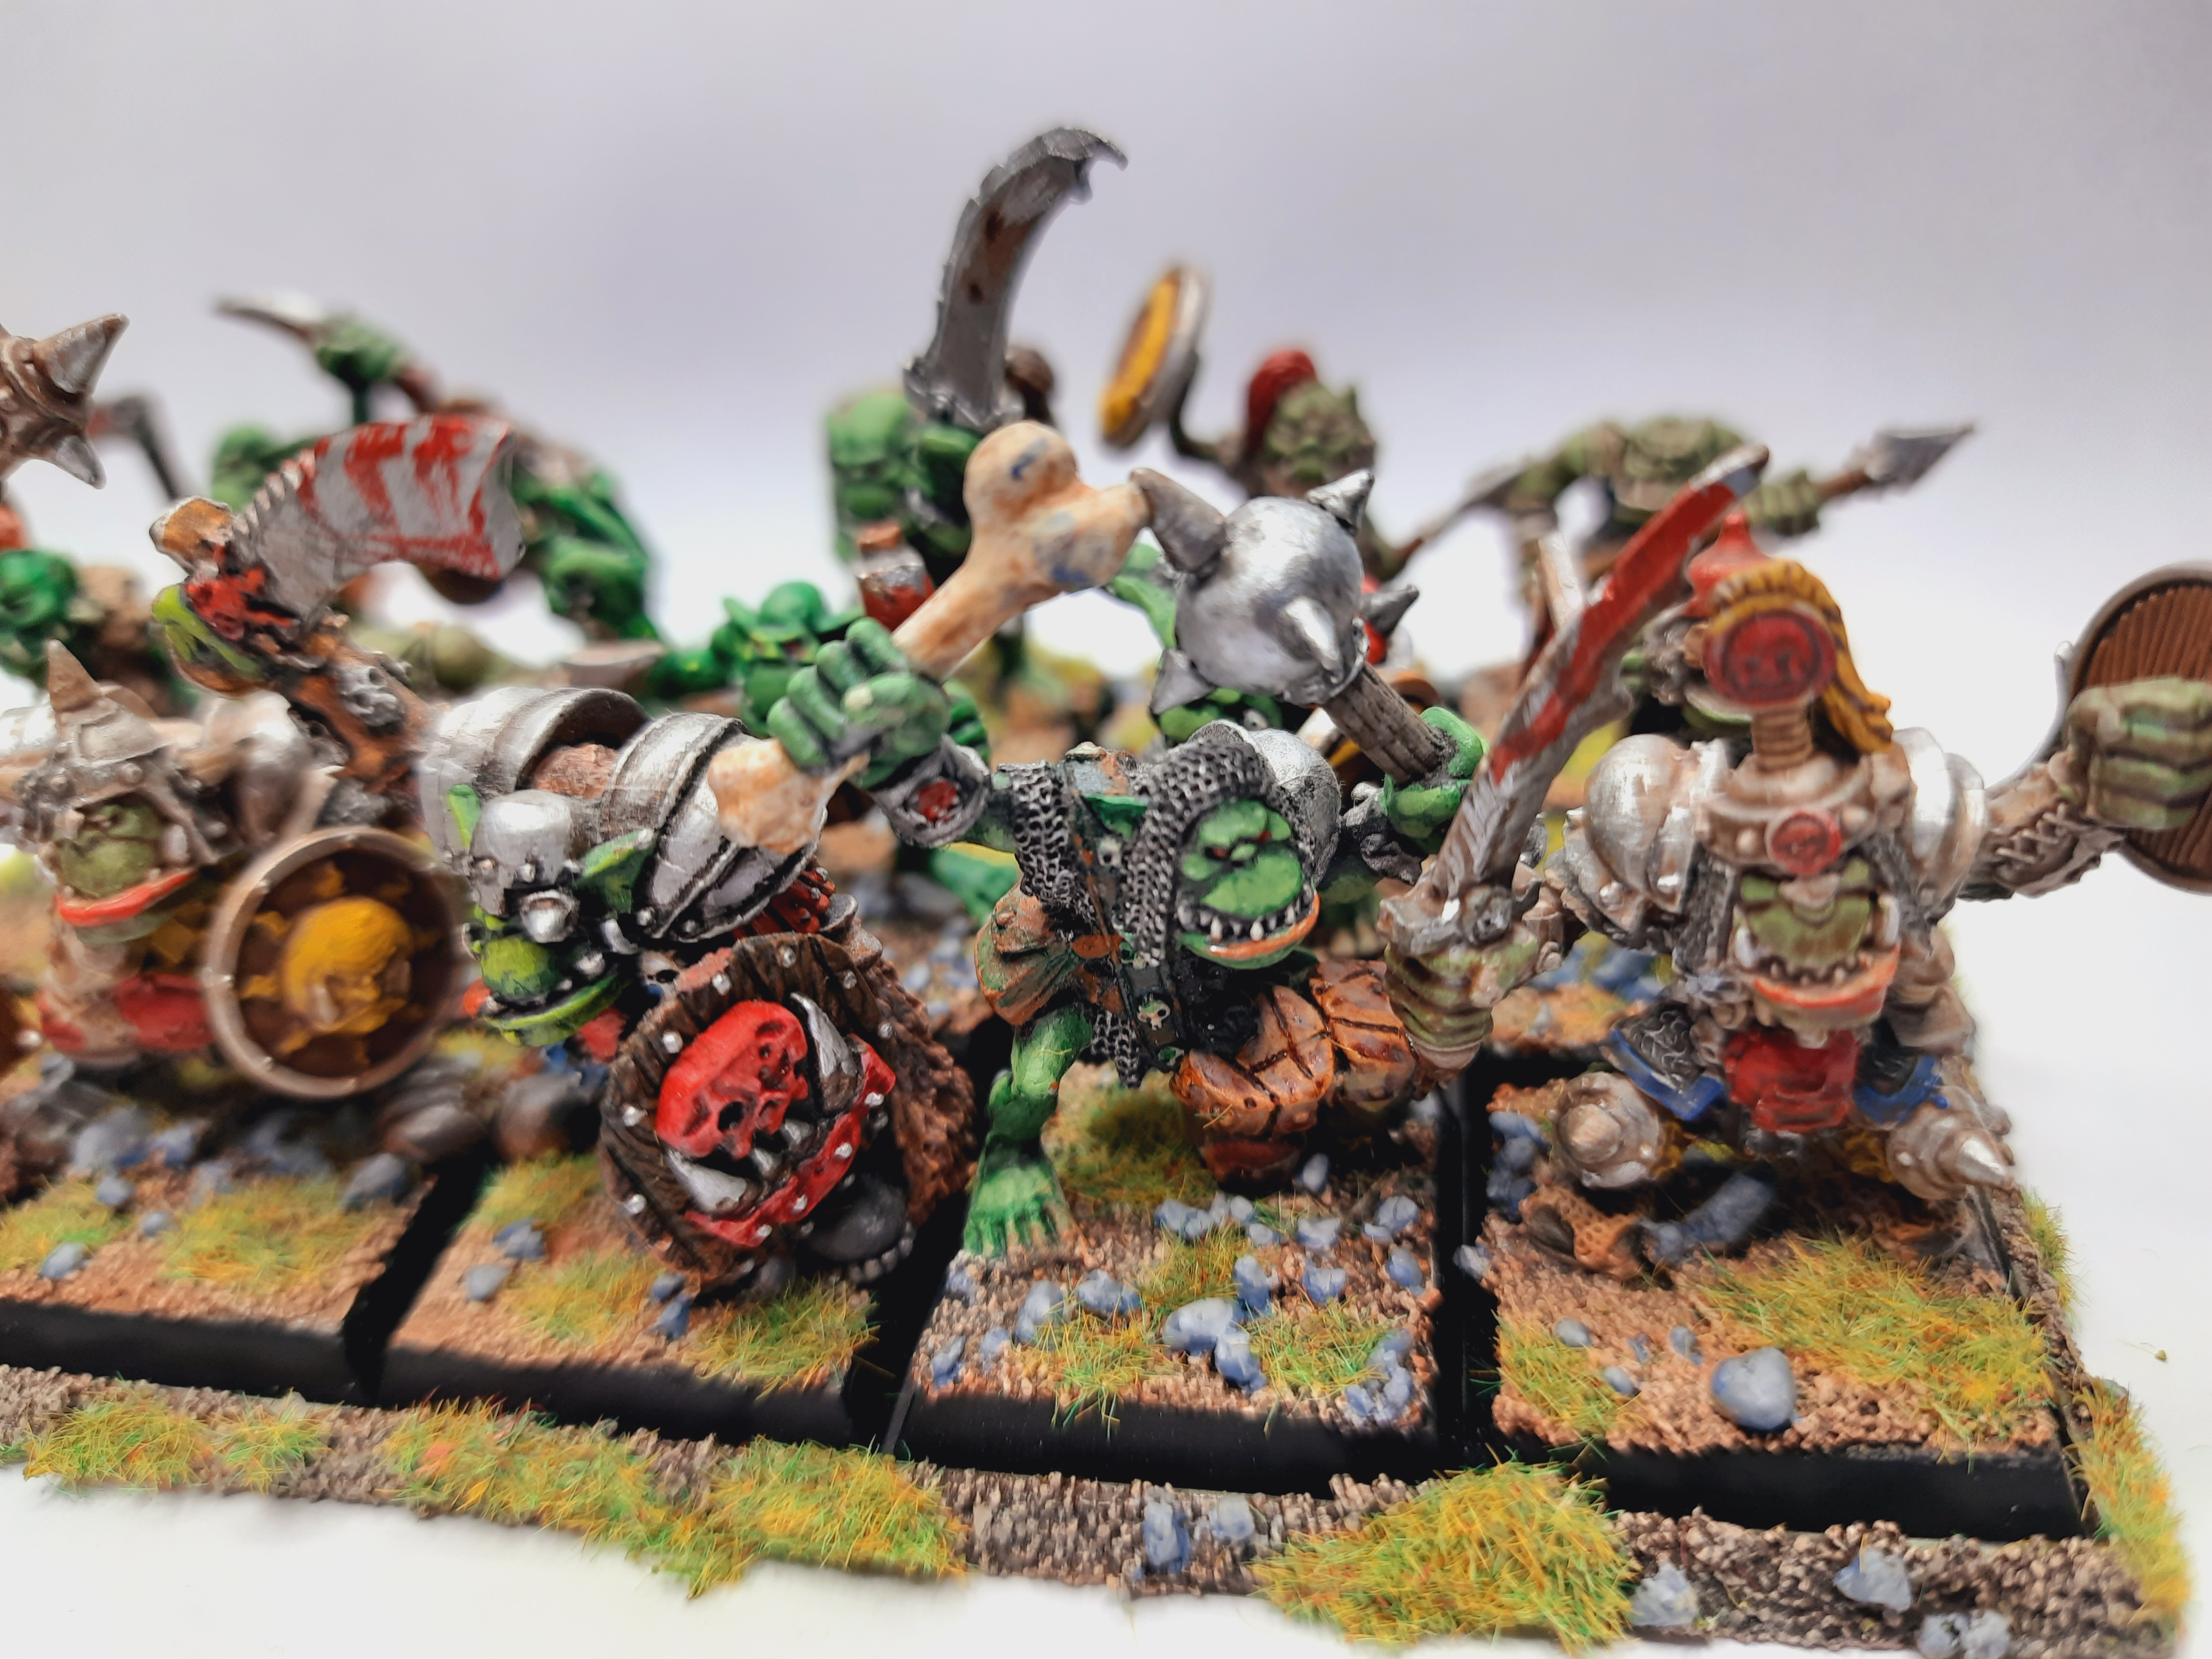 Orcs & Goblins #3 by wrusher